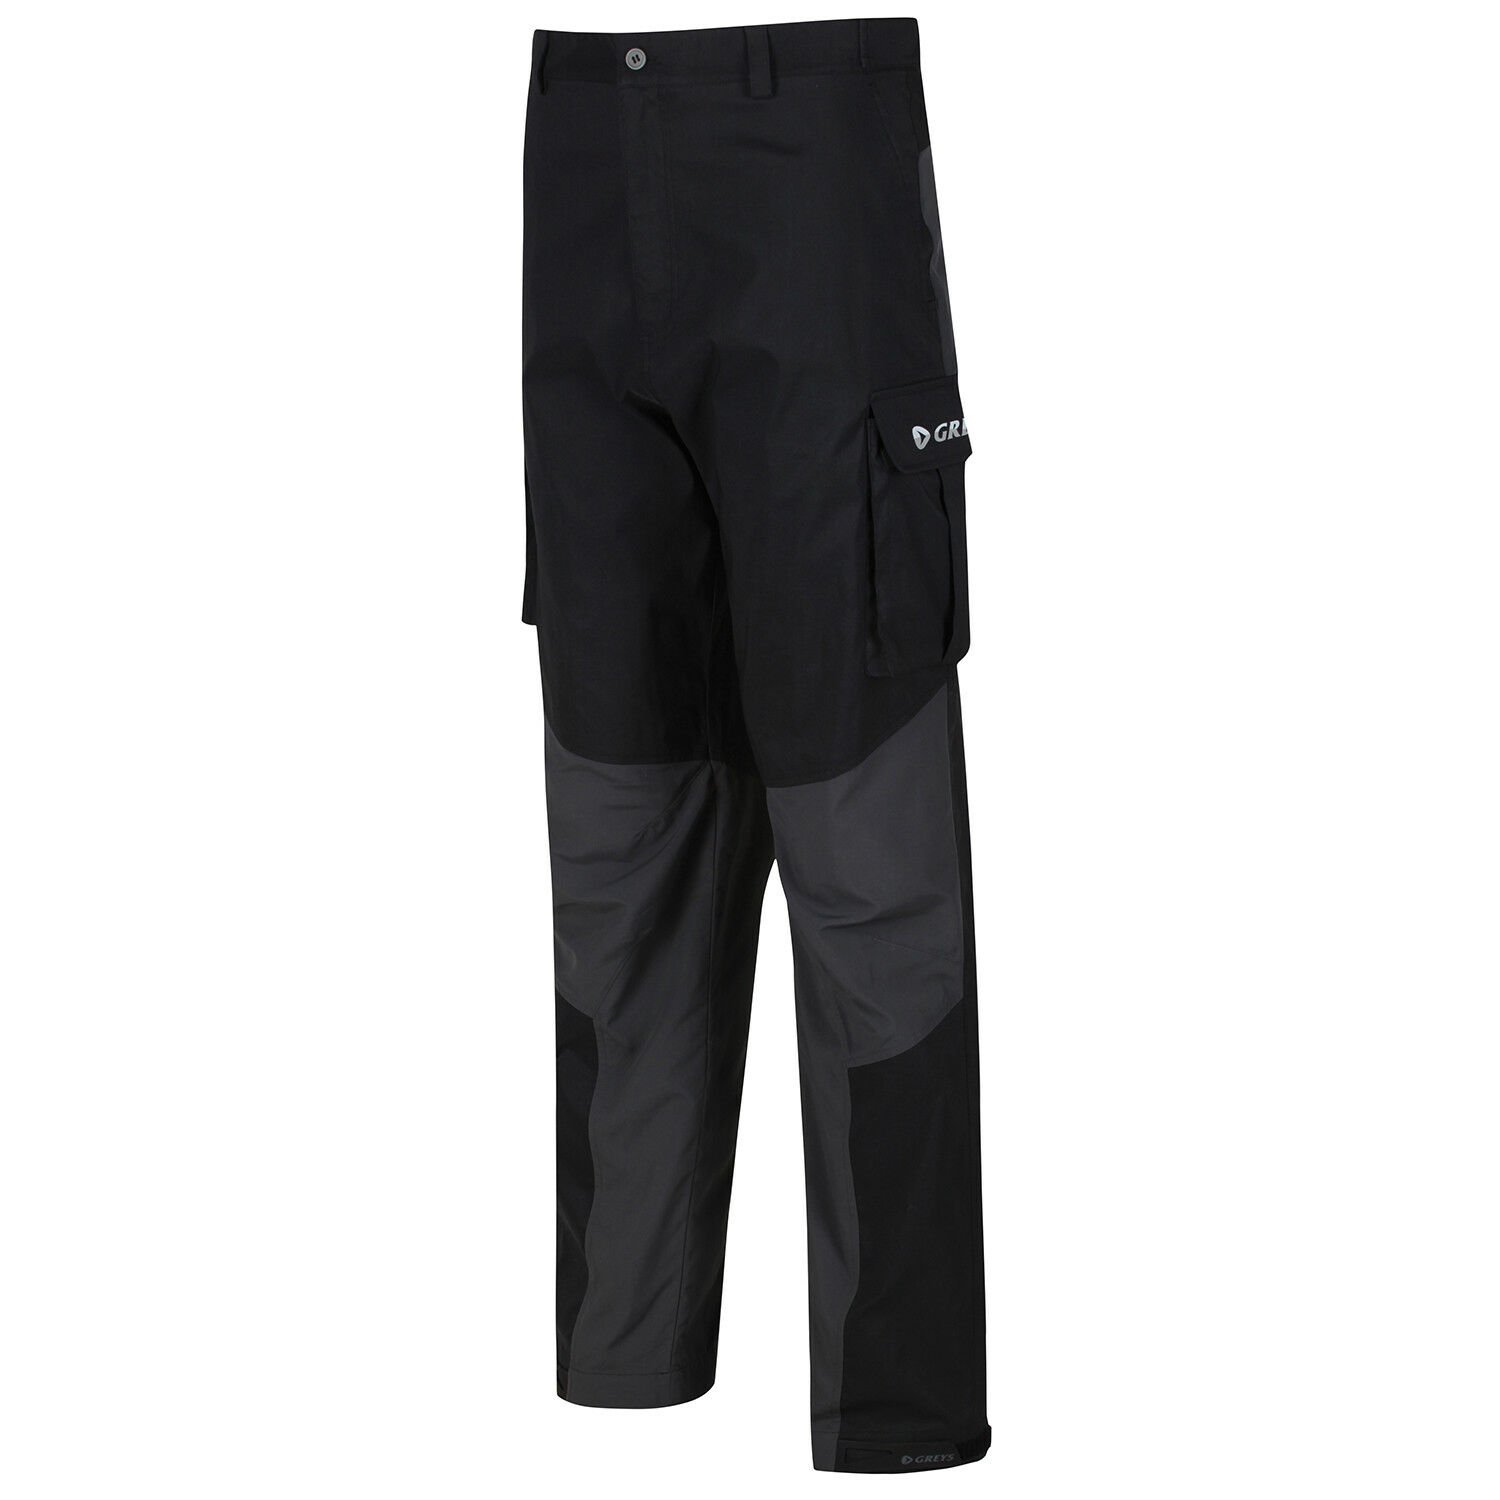 Graus Technical Fishing Trousers Lightweight Breathable 2018 Adjustable NEW 2018 Breathable cda93b